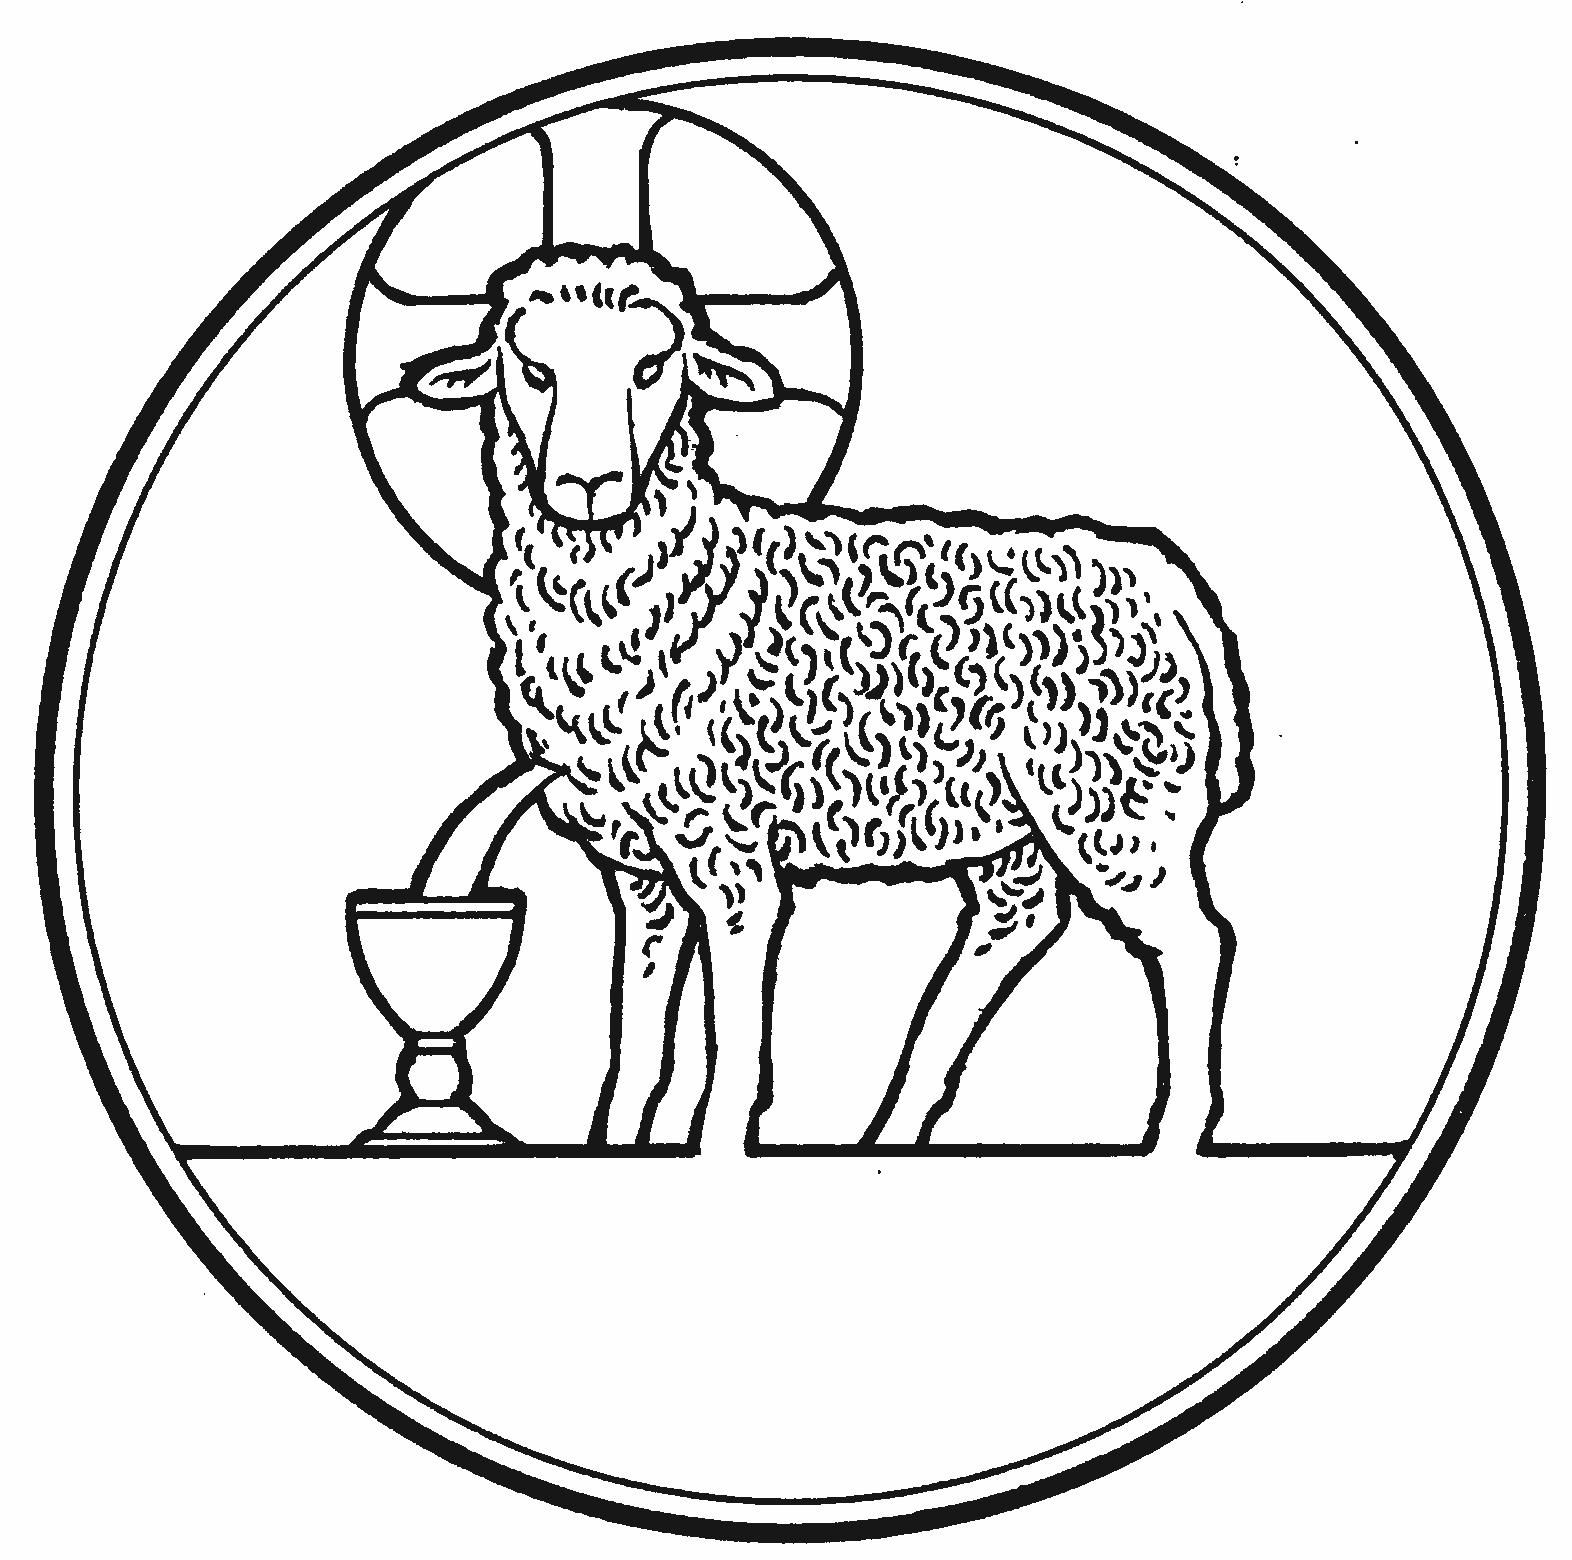 Lamb Of God Clip Art Black And White Take A Look At The